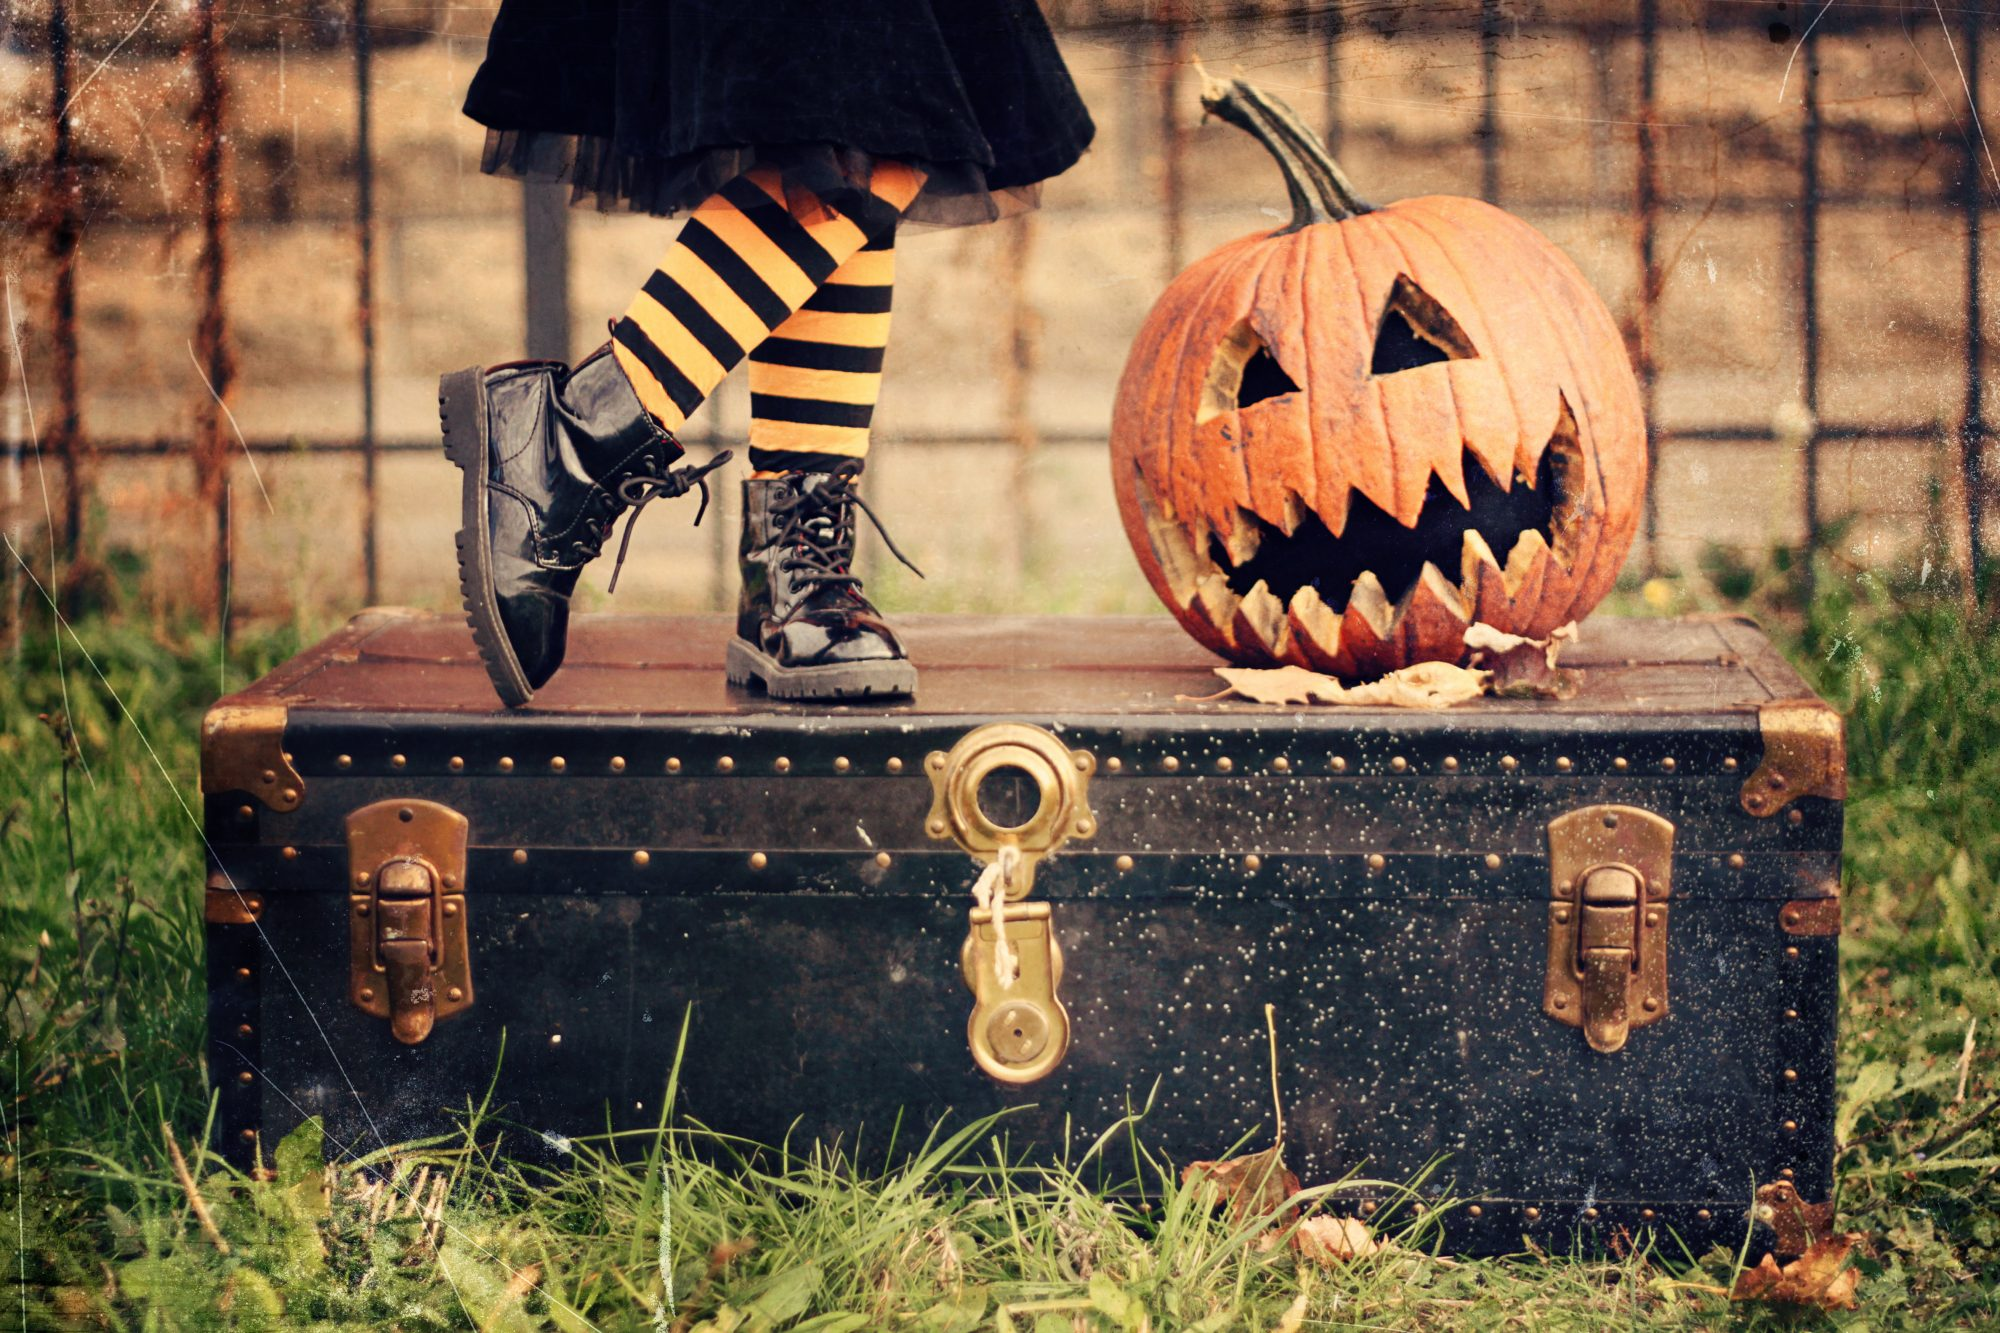 Halloween Trunk with Pumpkin and Little Striped Legs